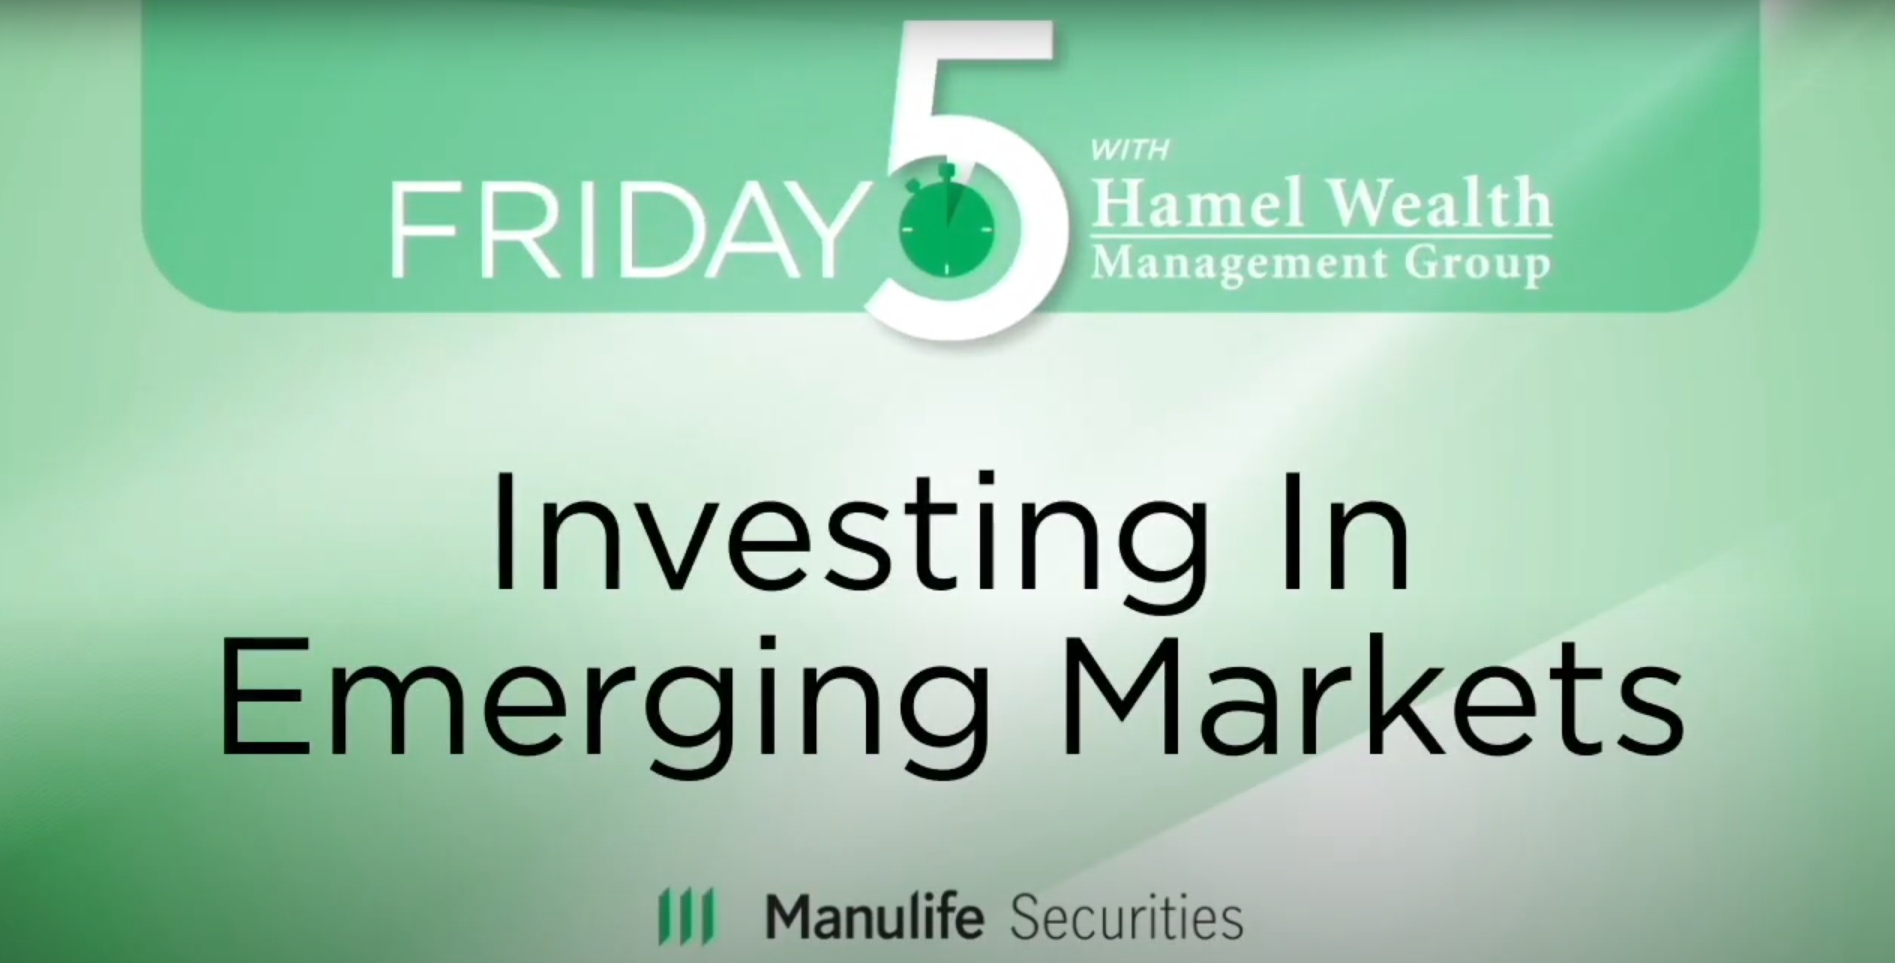 Friday 5 - Investing In Emerging Markets - Kimberly West Thumbnail